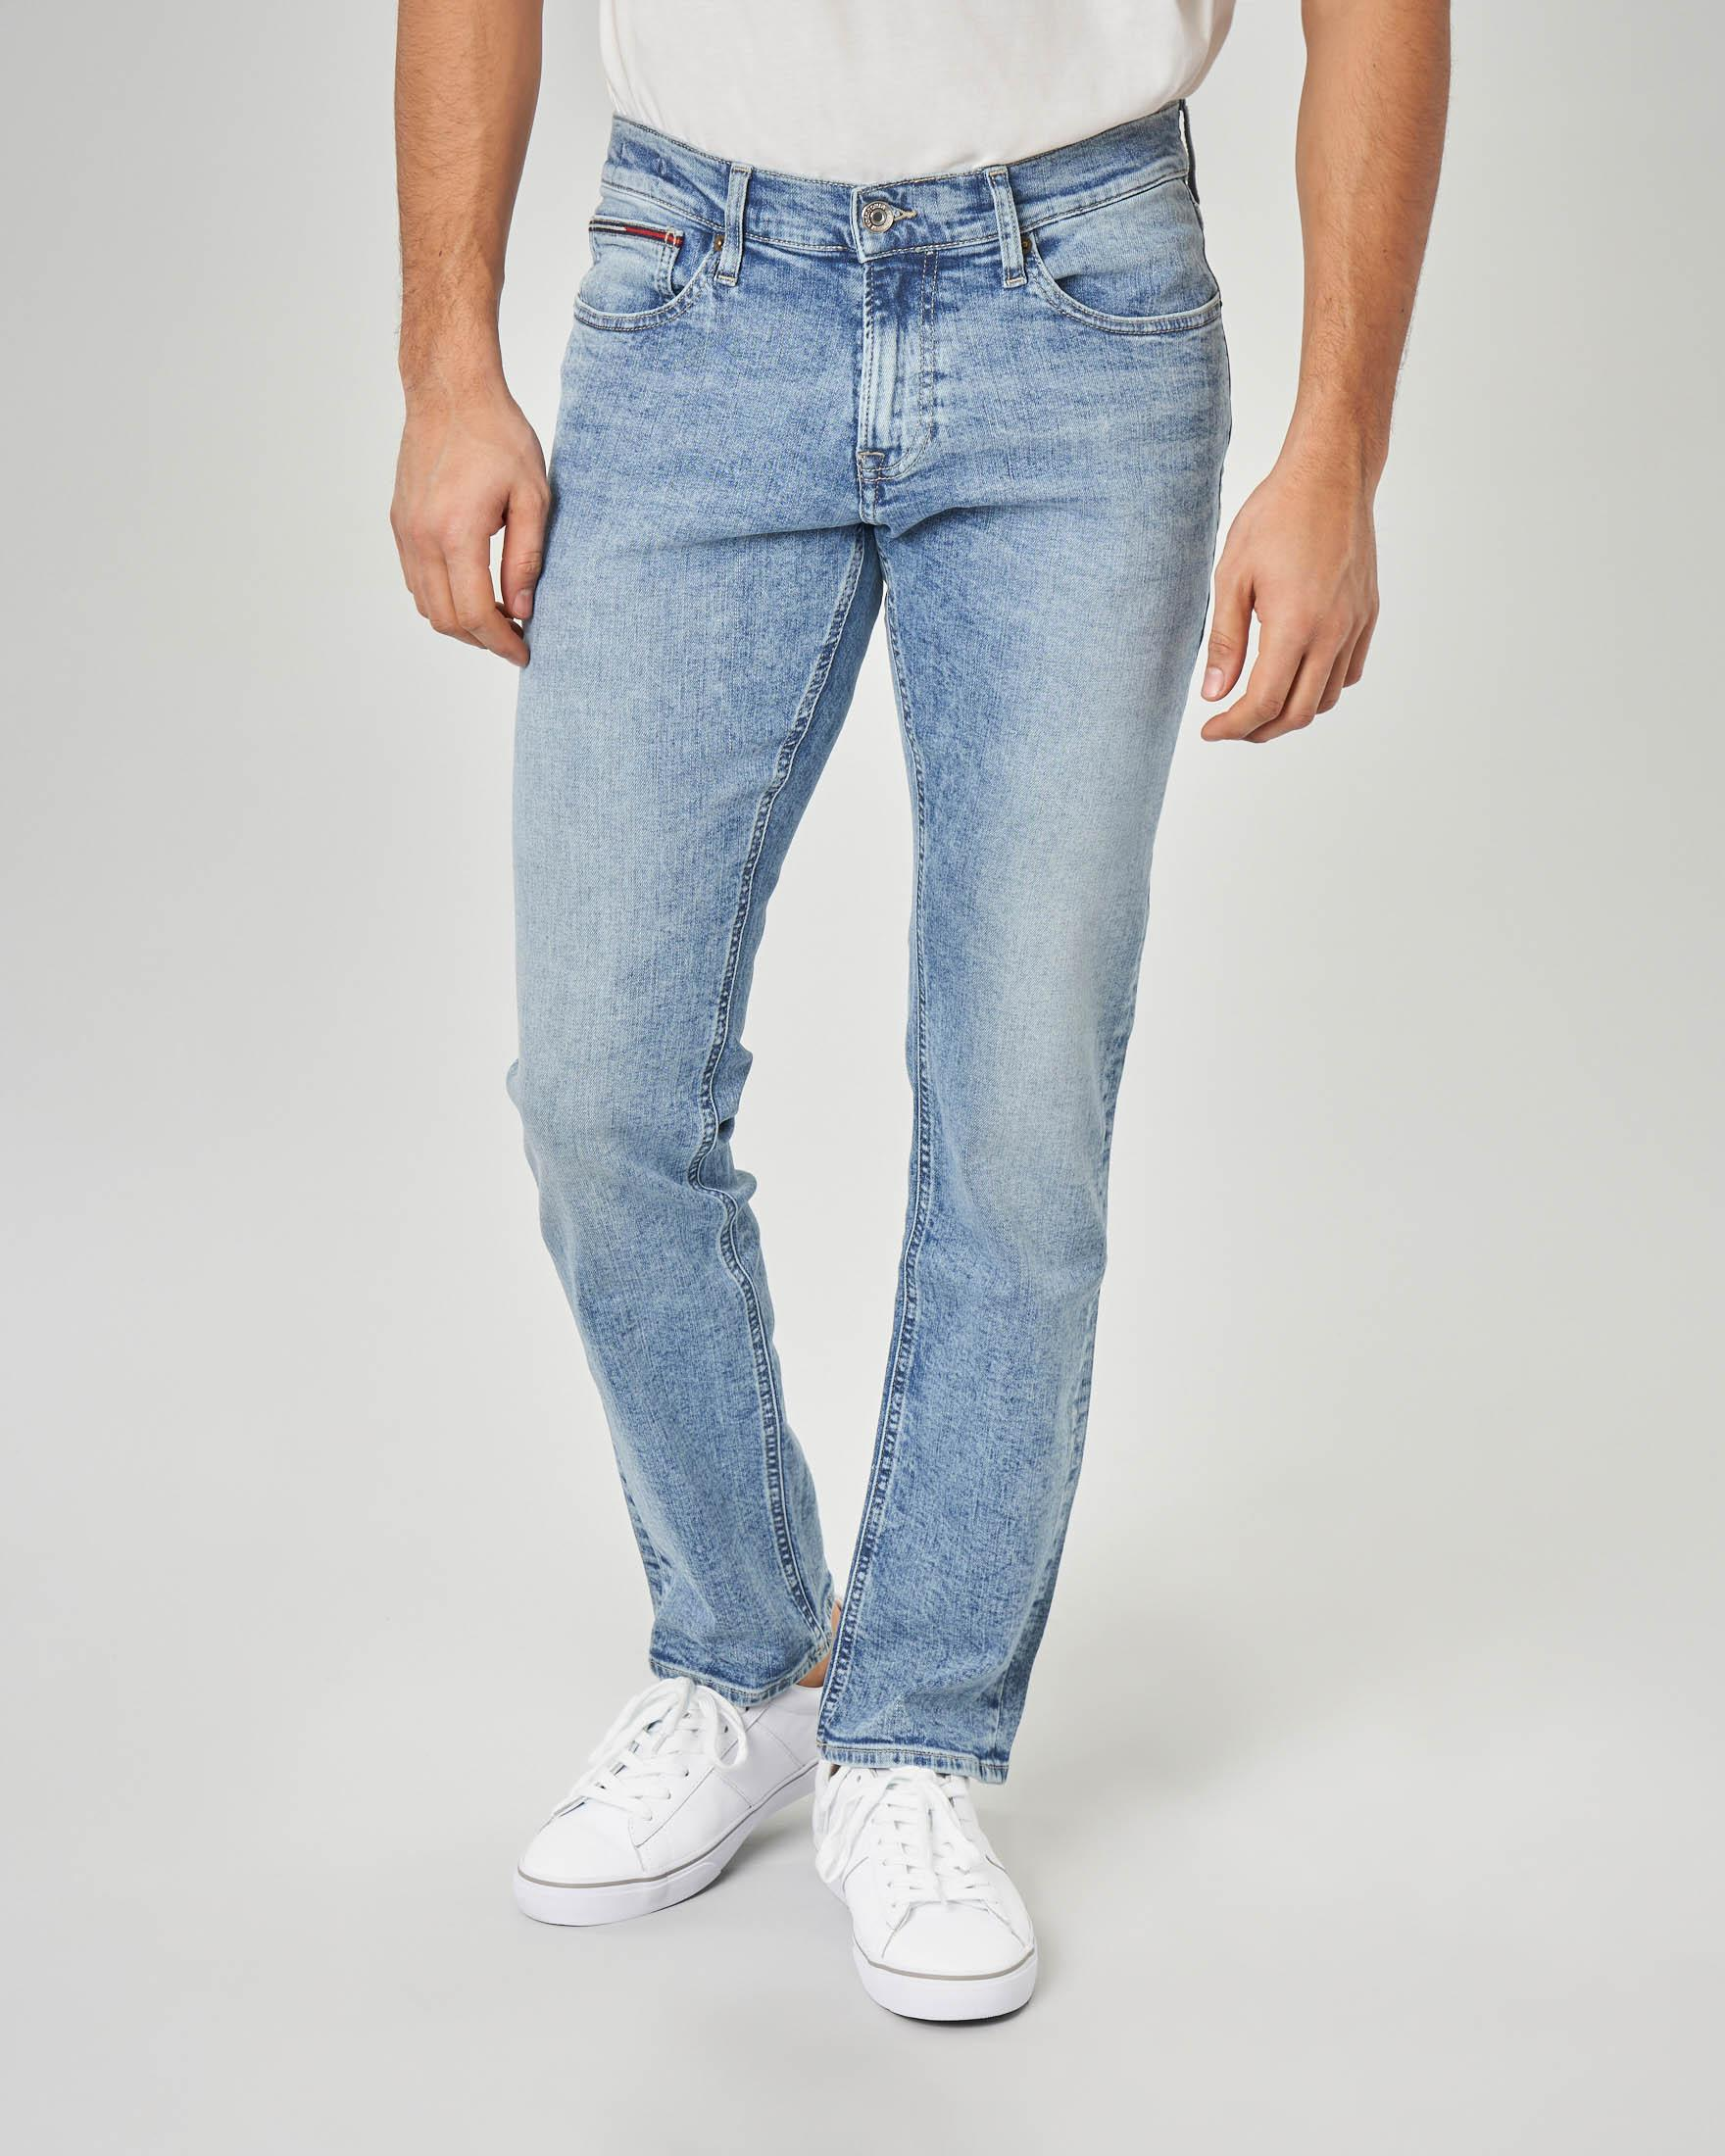 Jeans Scanton slim-fit lavaggio bleach